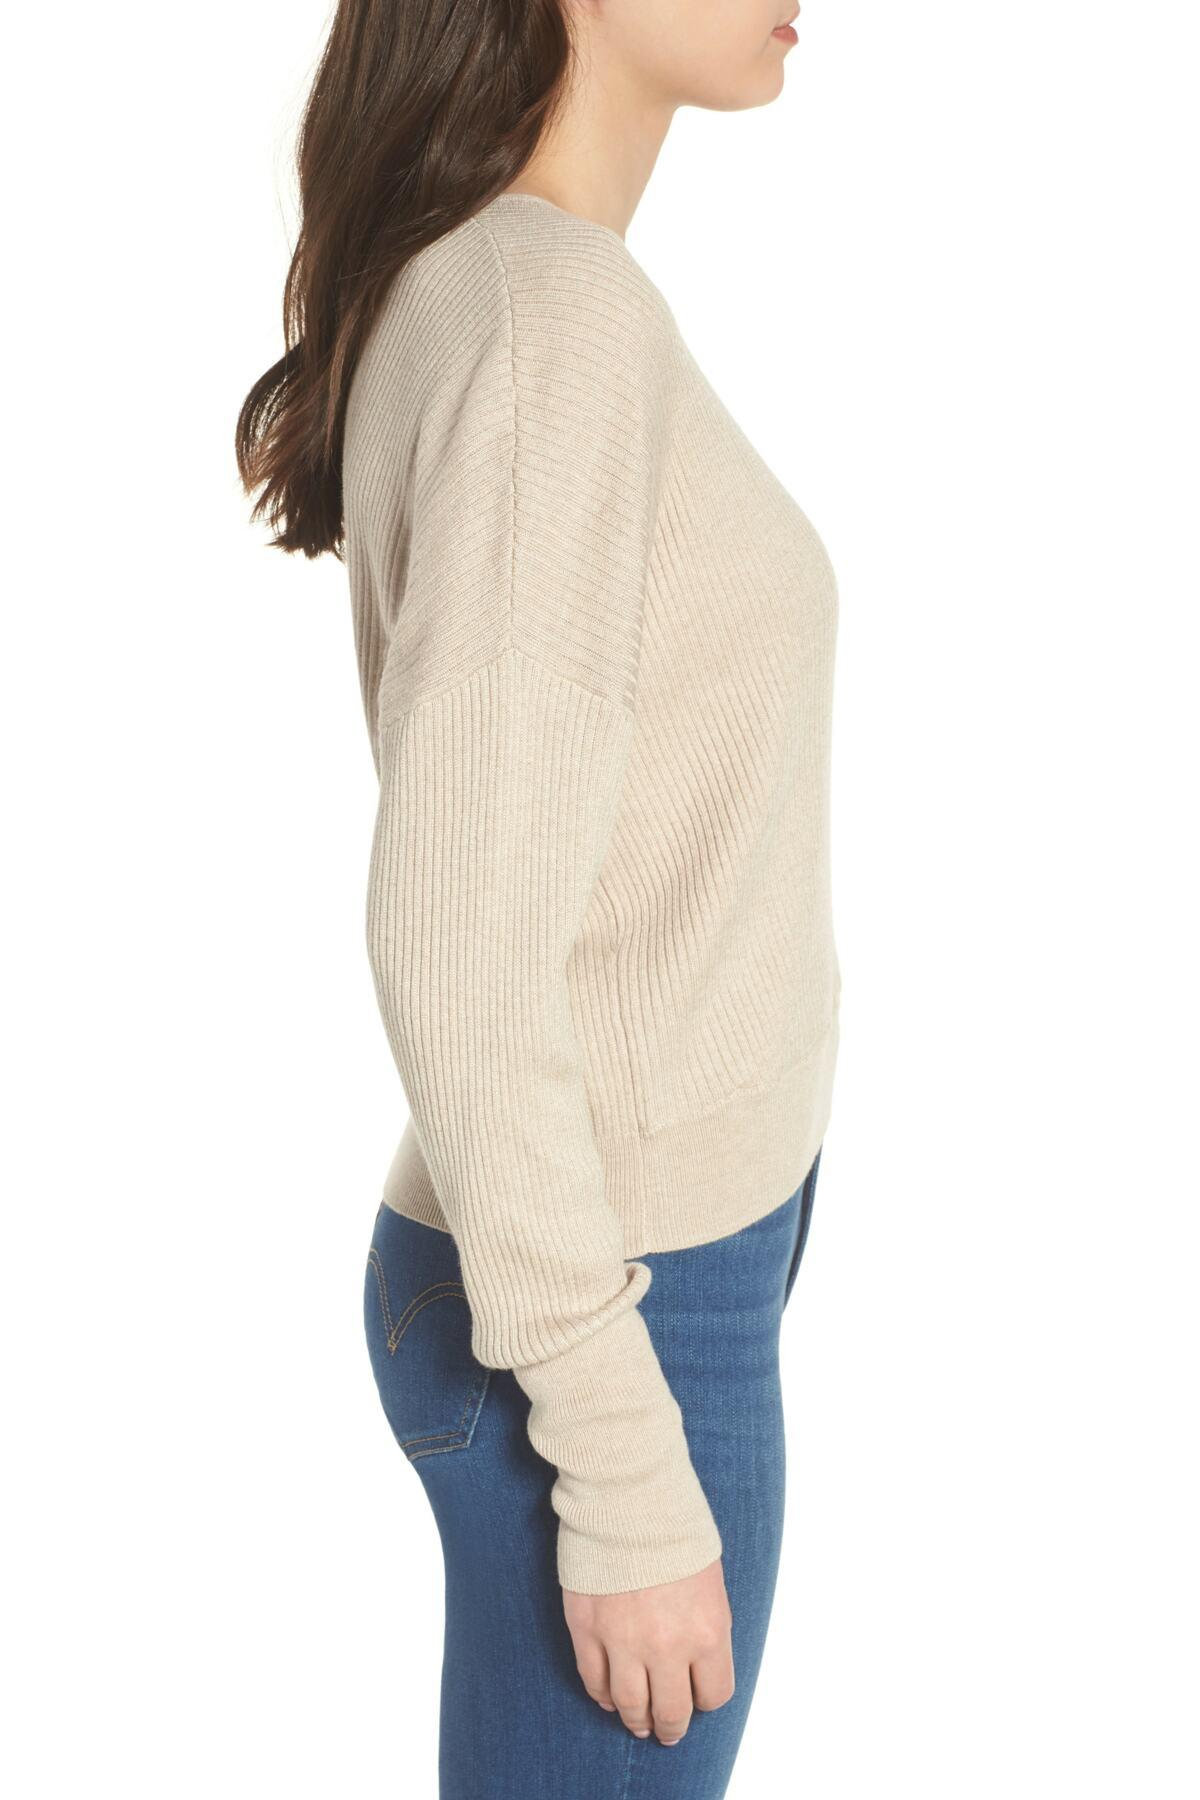 57279fb85 Lyst - Leith Rib Wrap Sweater (regular   Plus Size) in Natural ...